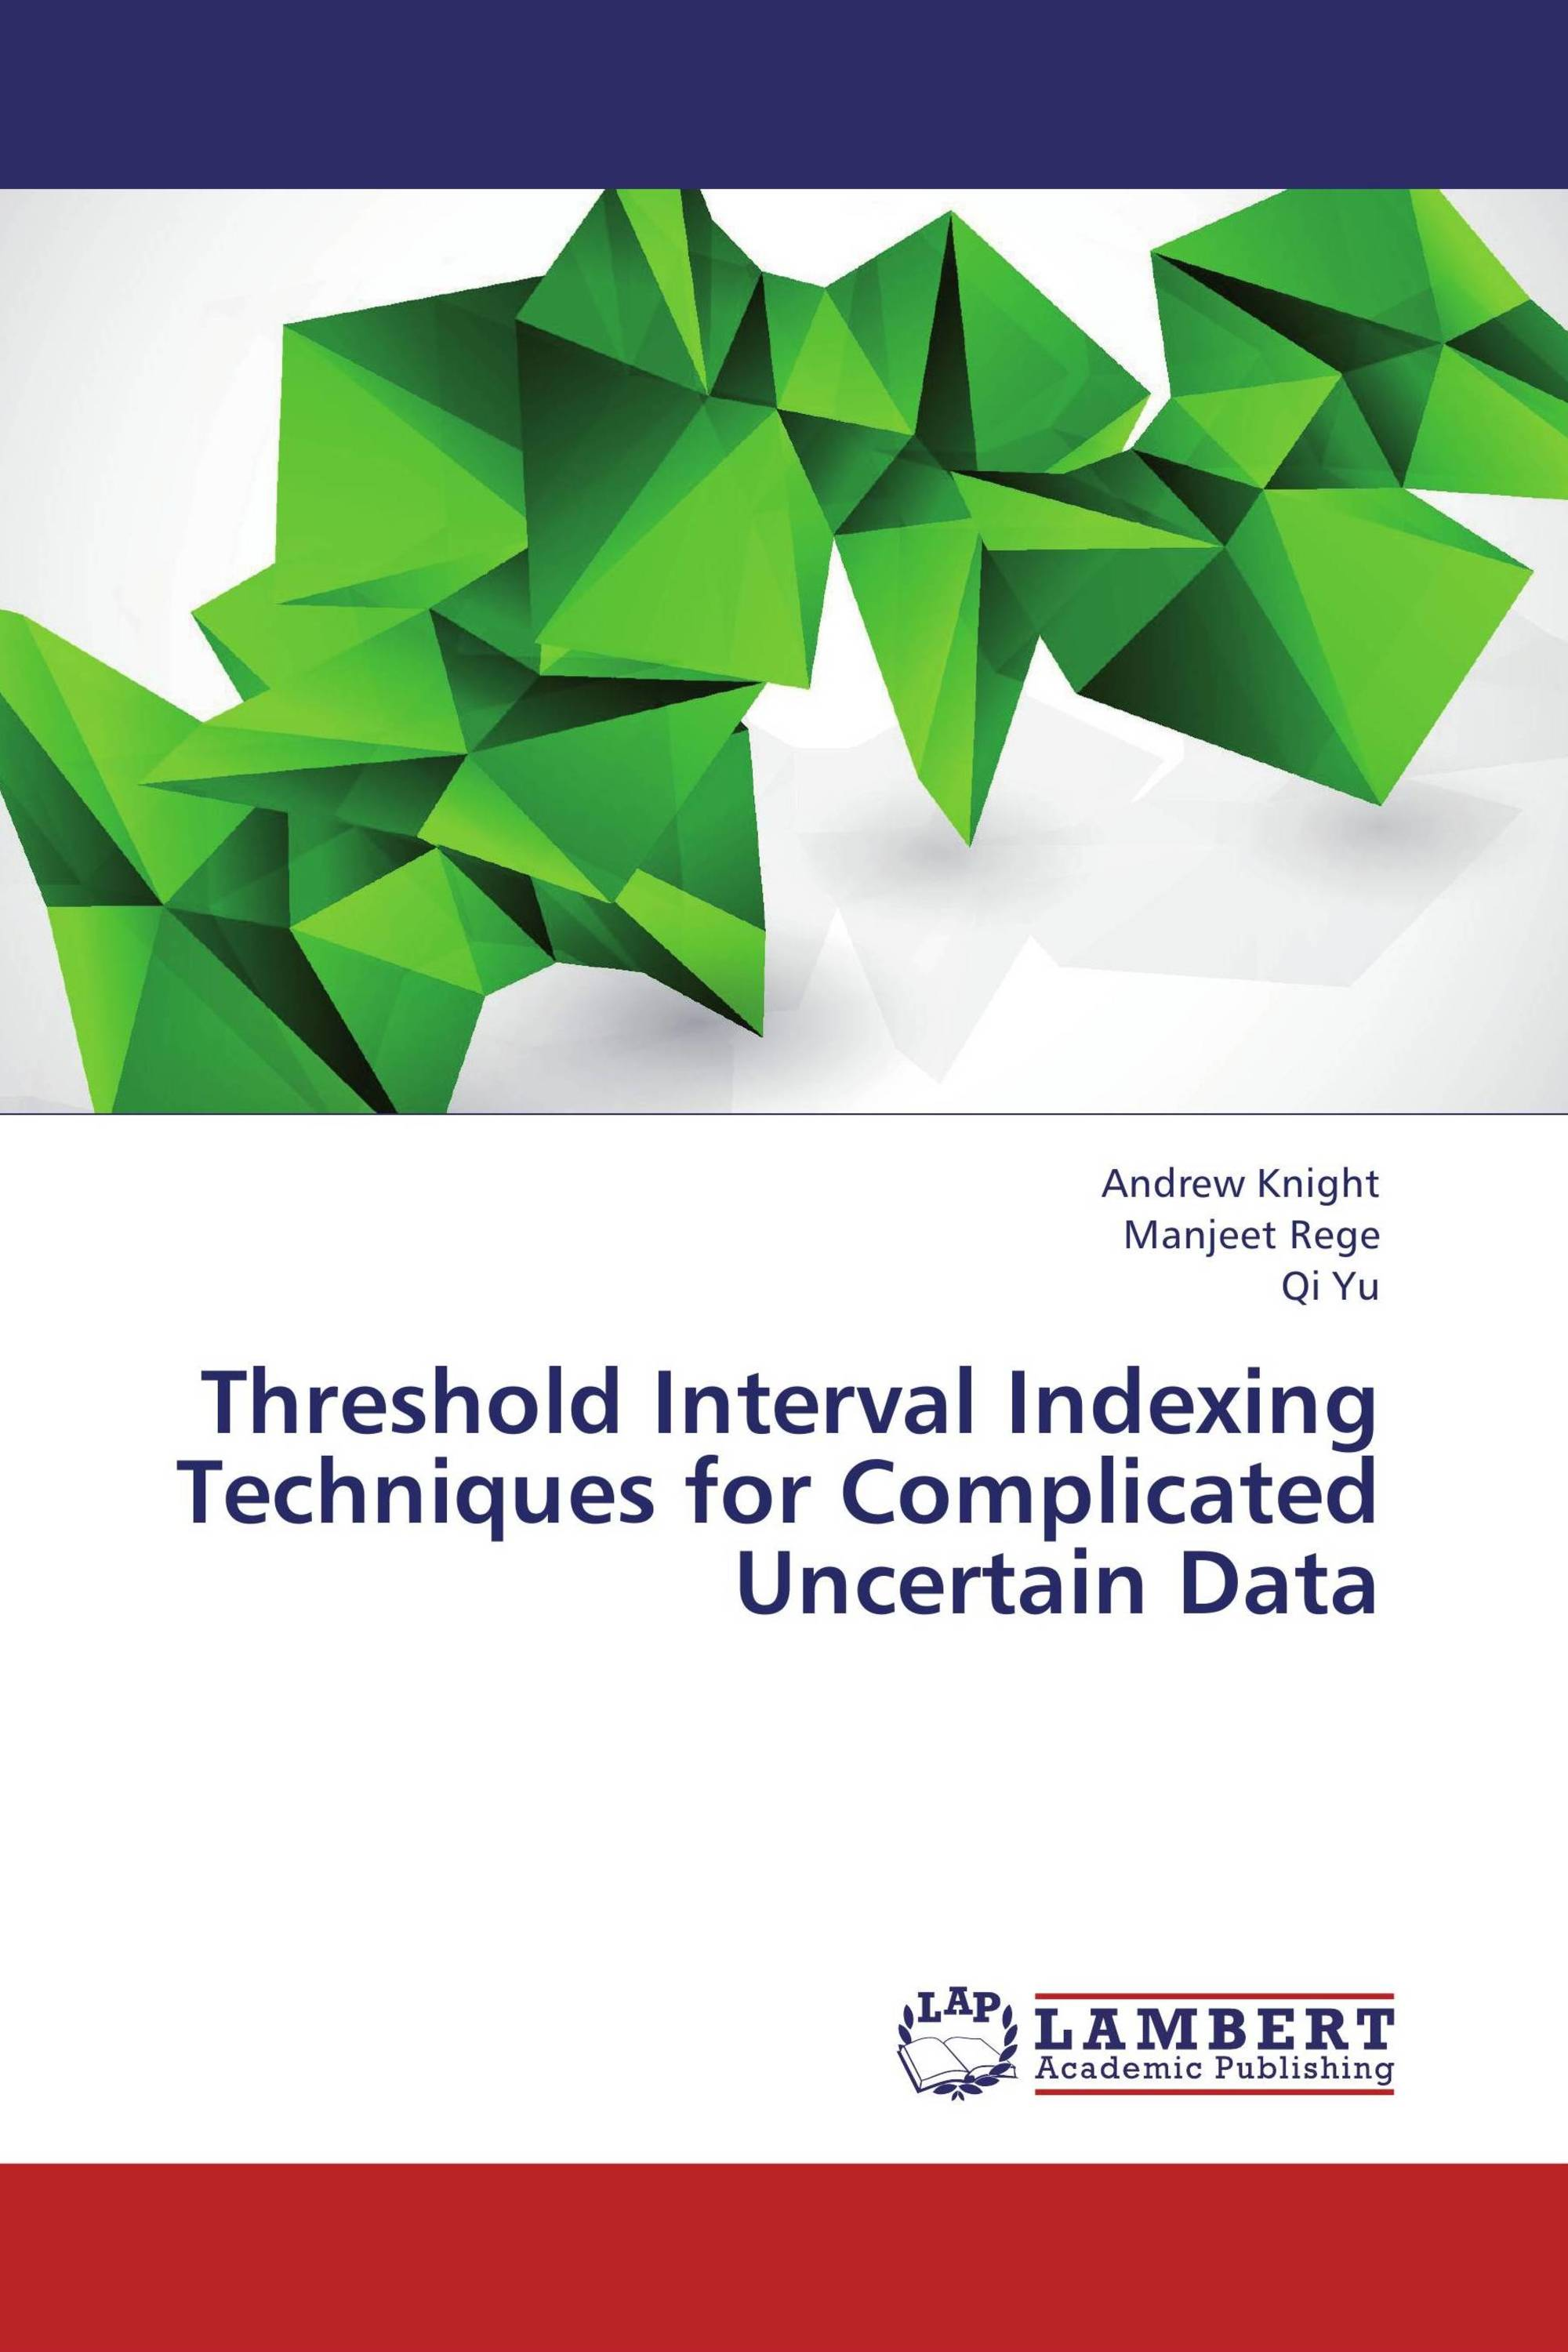 Threshold Interval Indexing Techniques for Complicated Uncertain Data